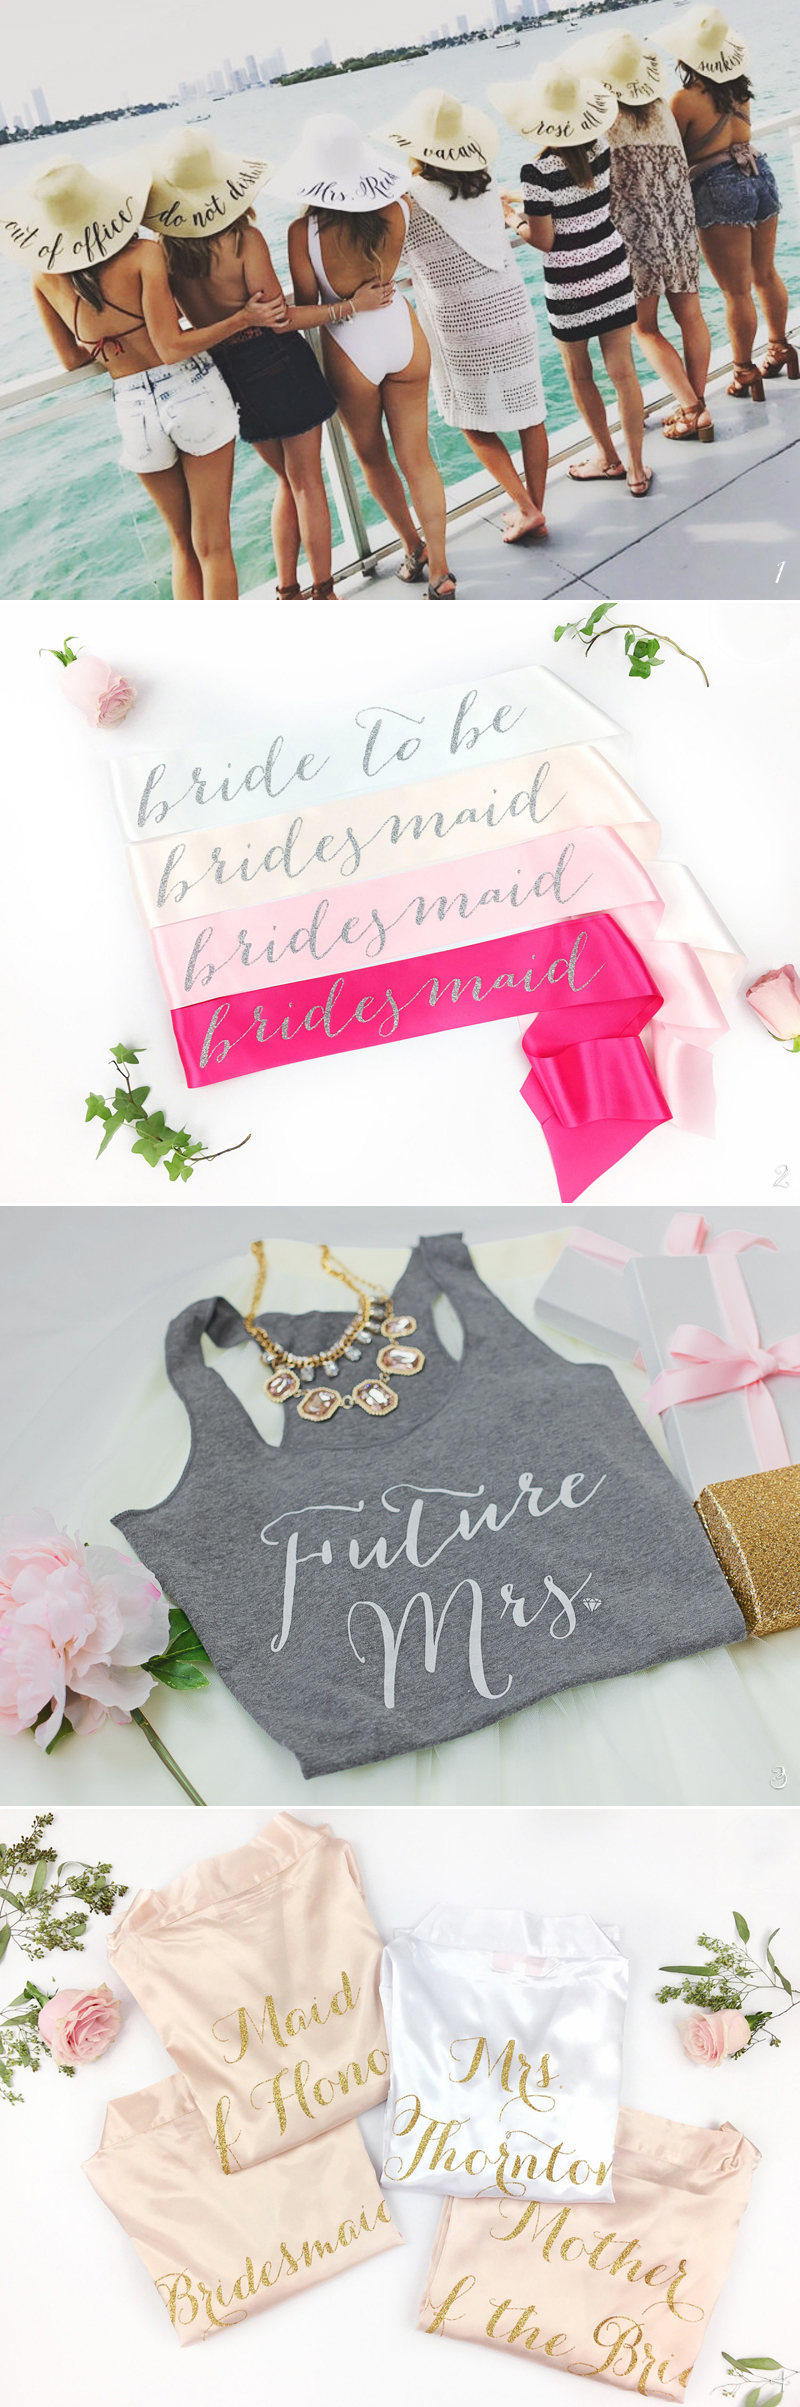 bridalshower02-whattowear